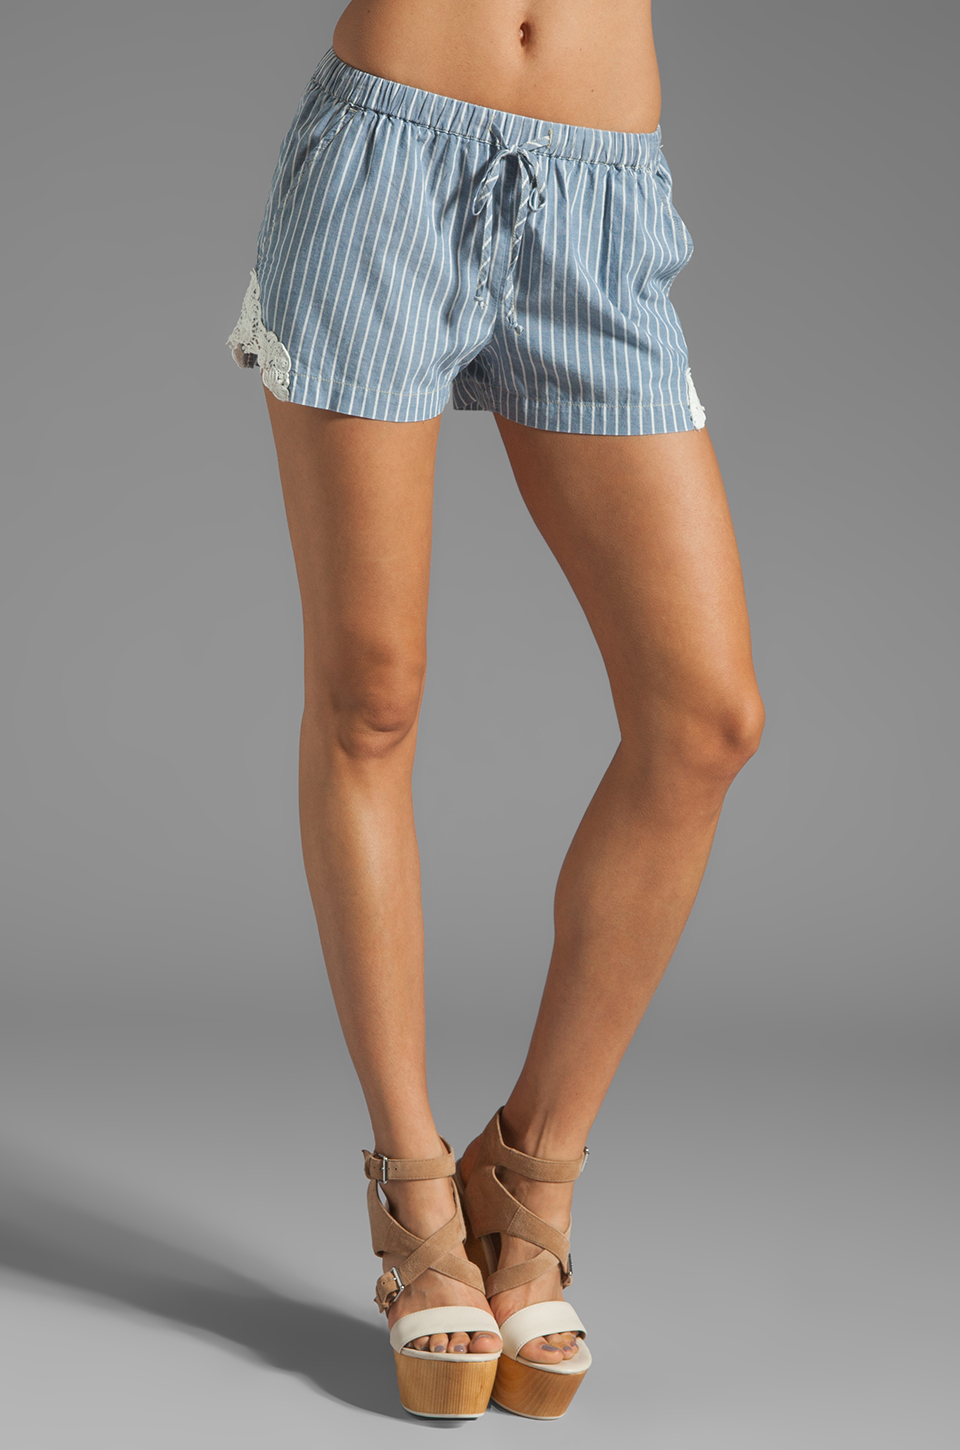 C&C California Stripe Short in Chambray Multi